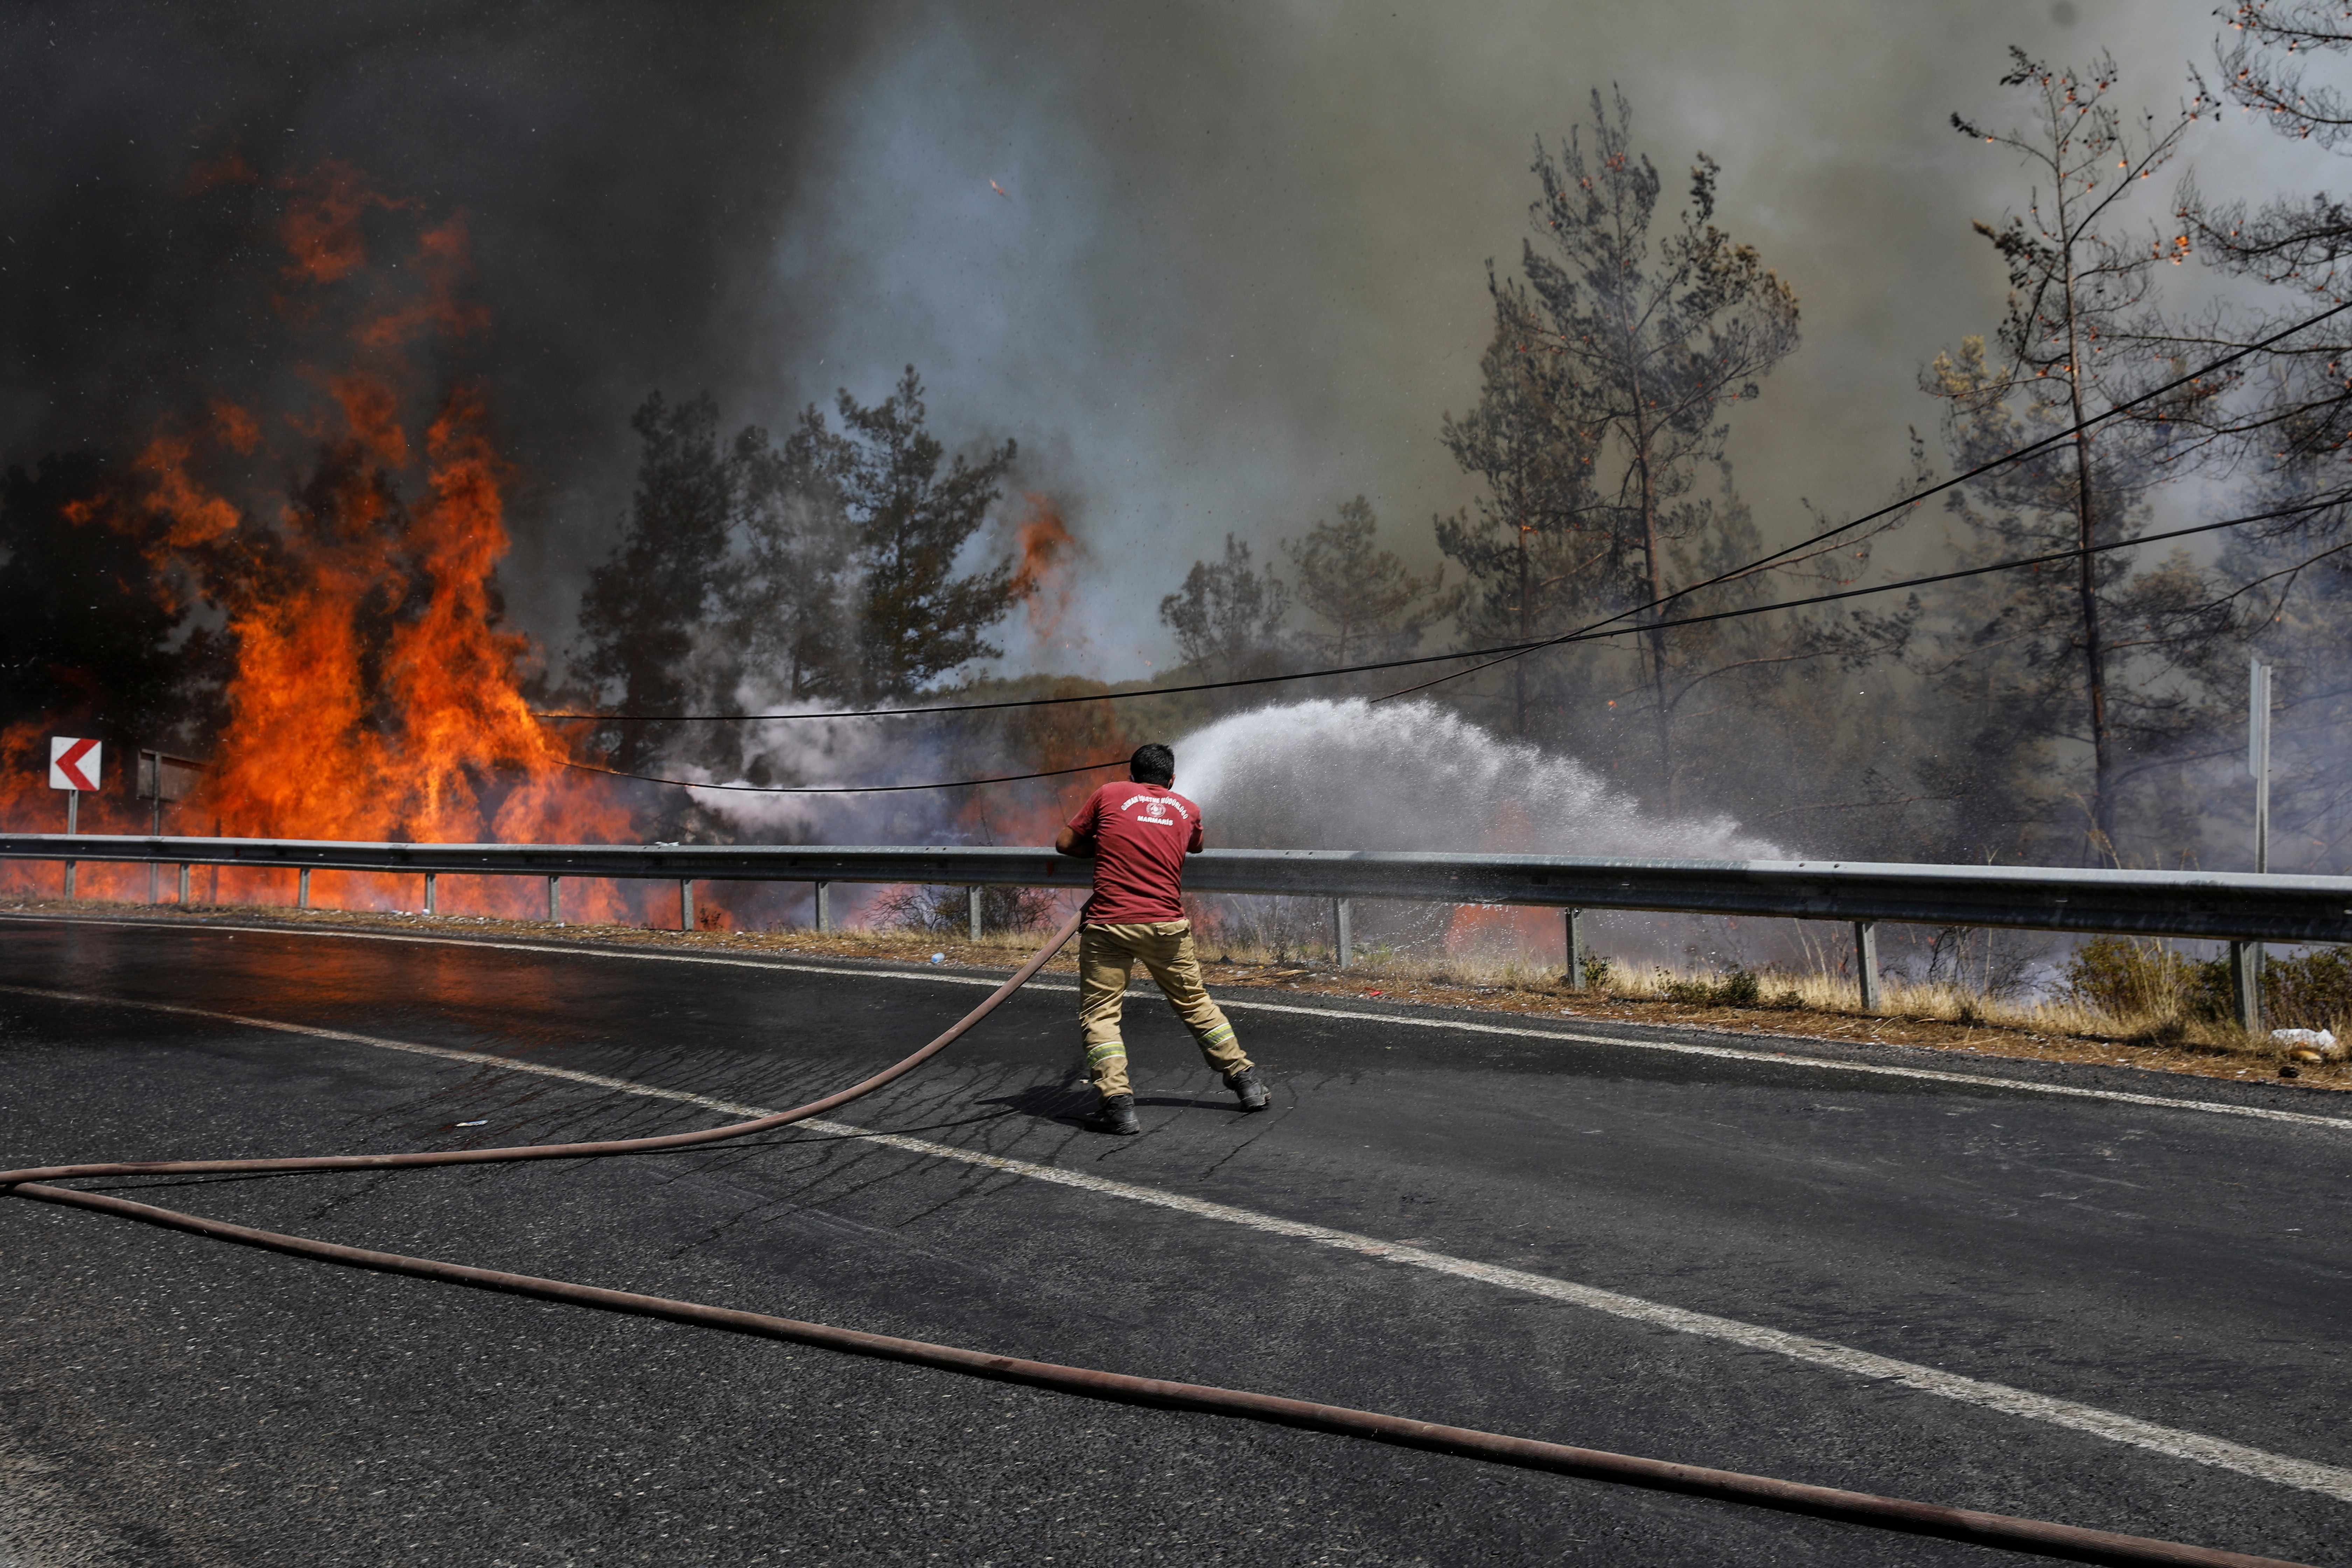 A firefighter tries to extinguish a wildfire near Marmaris, Turkey, August 1, 2021.